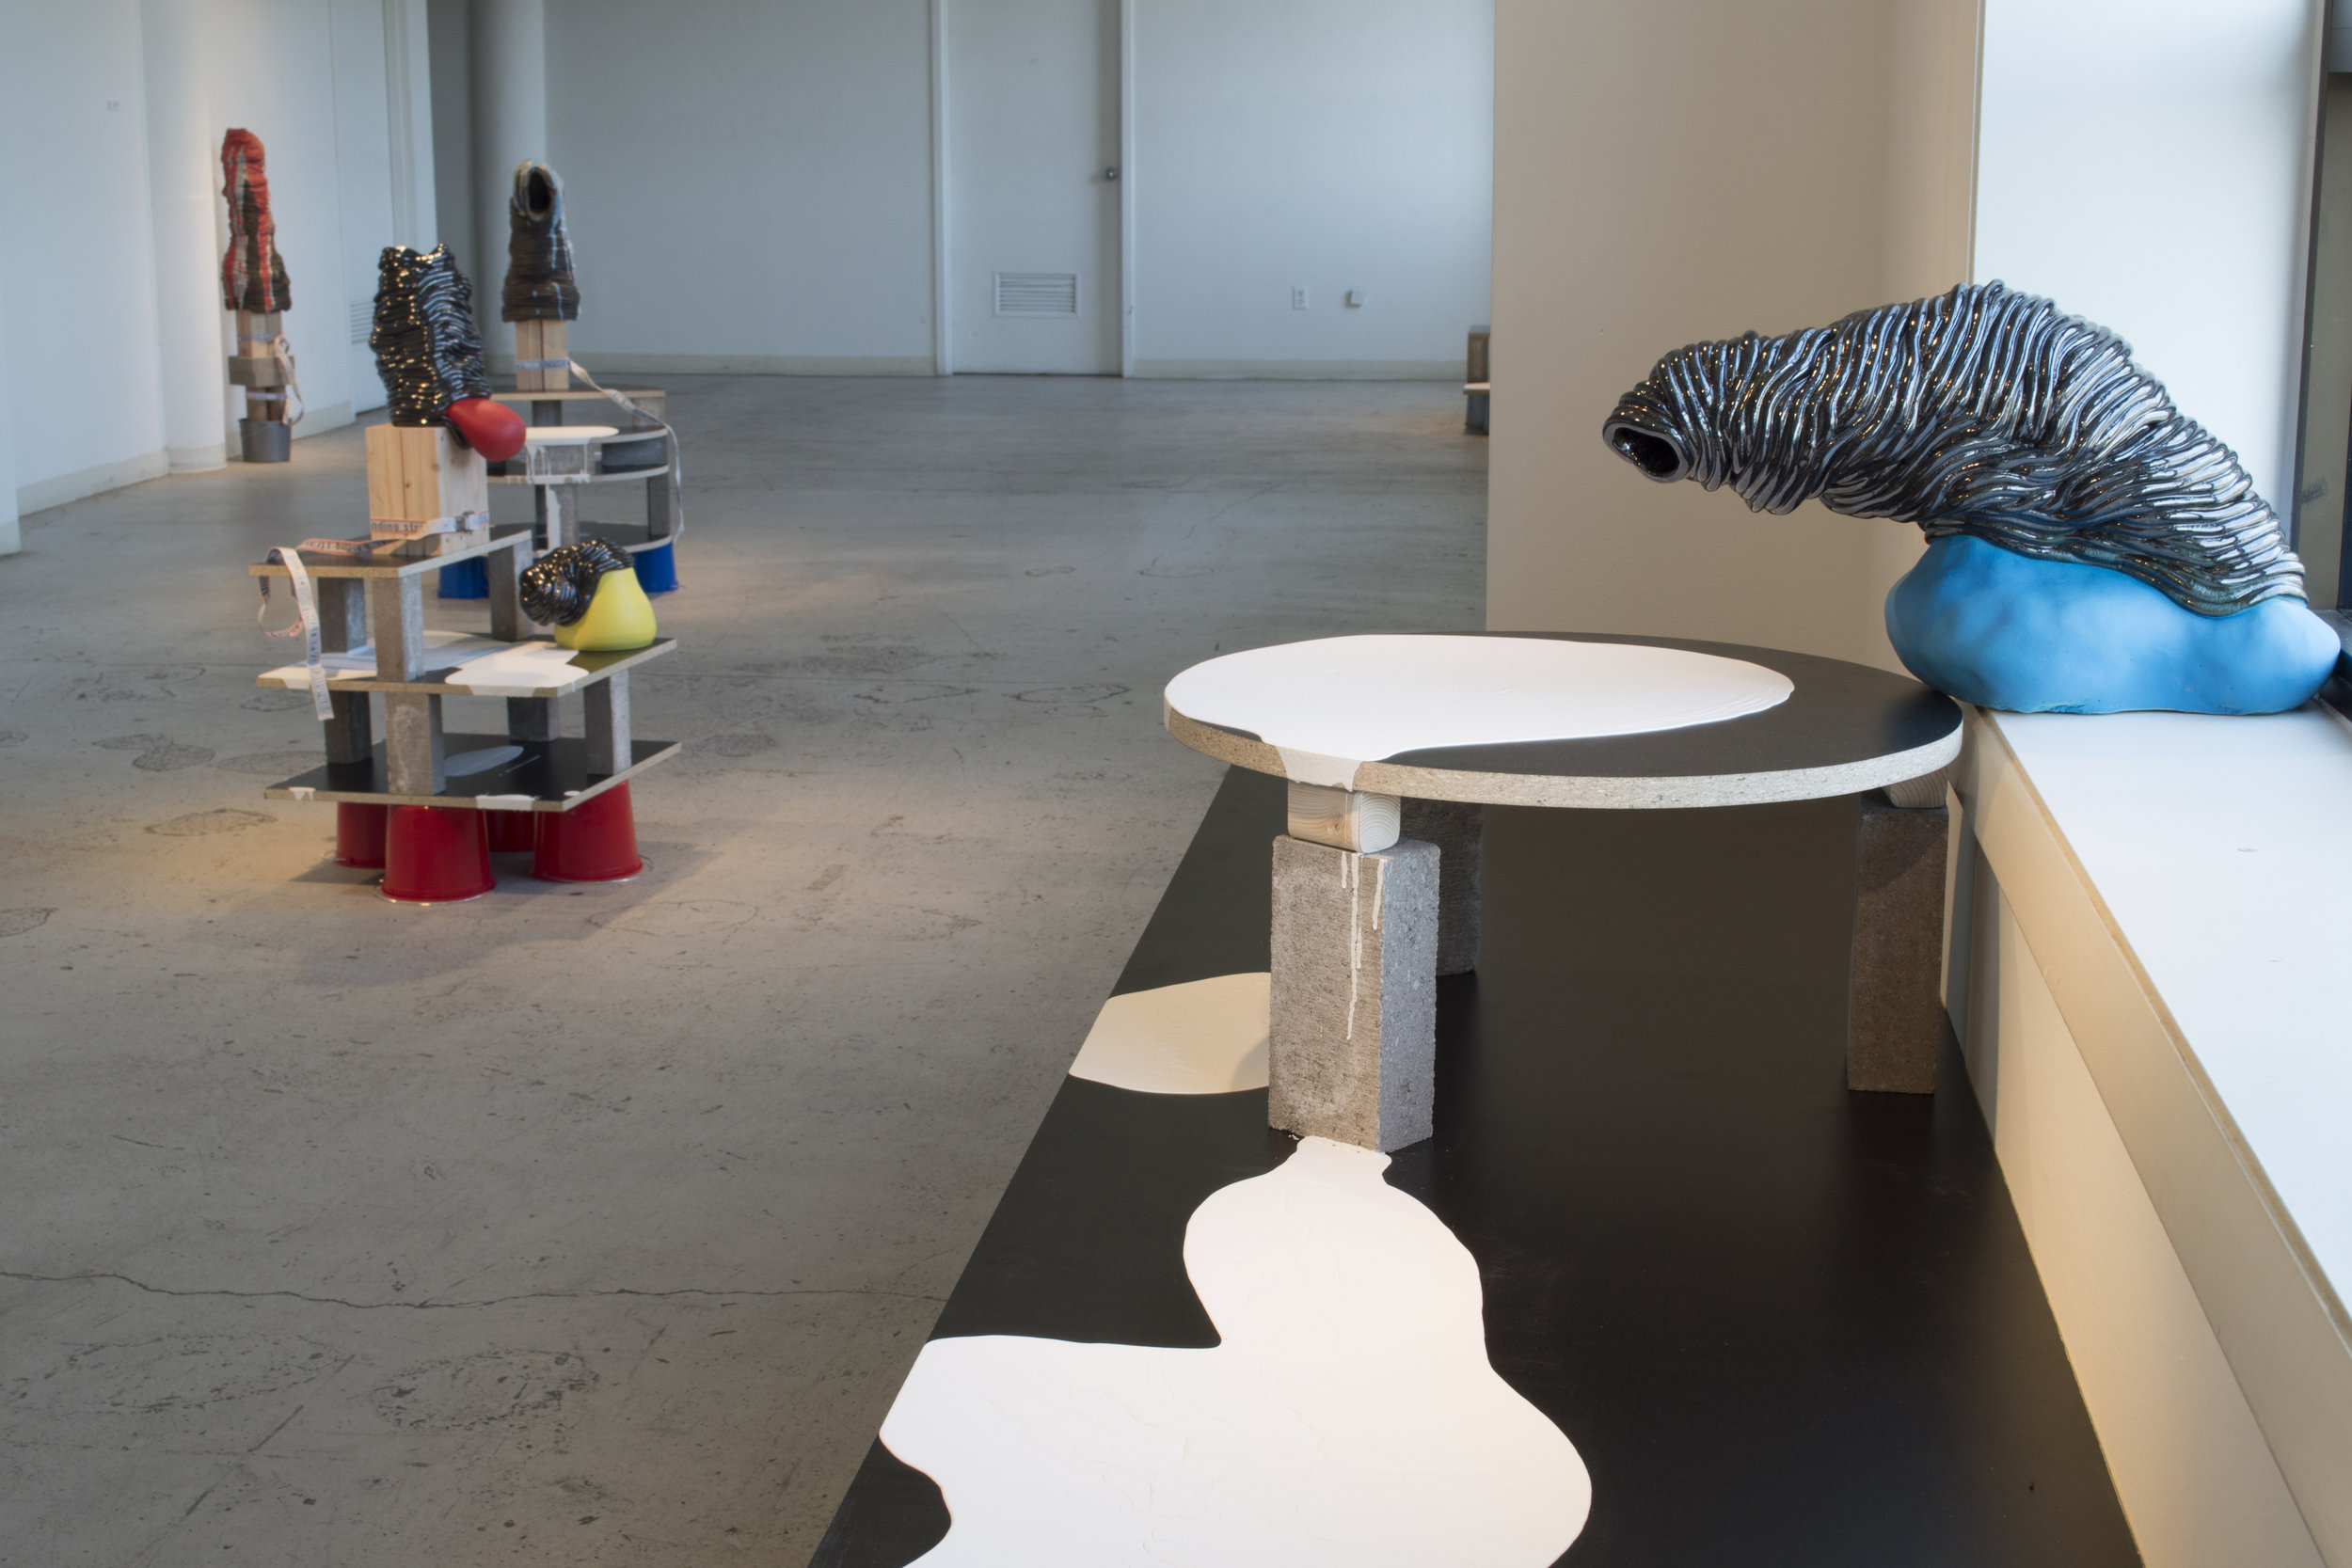 Do You Find Me Honest Yet? (Installation view)